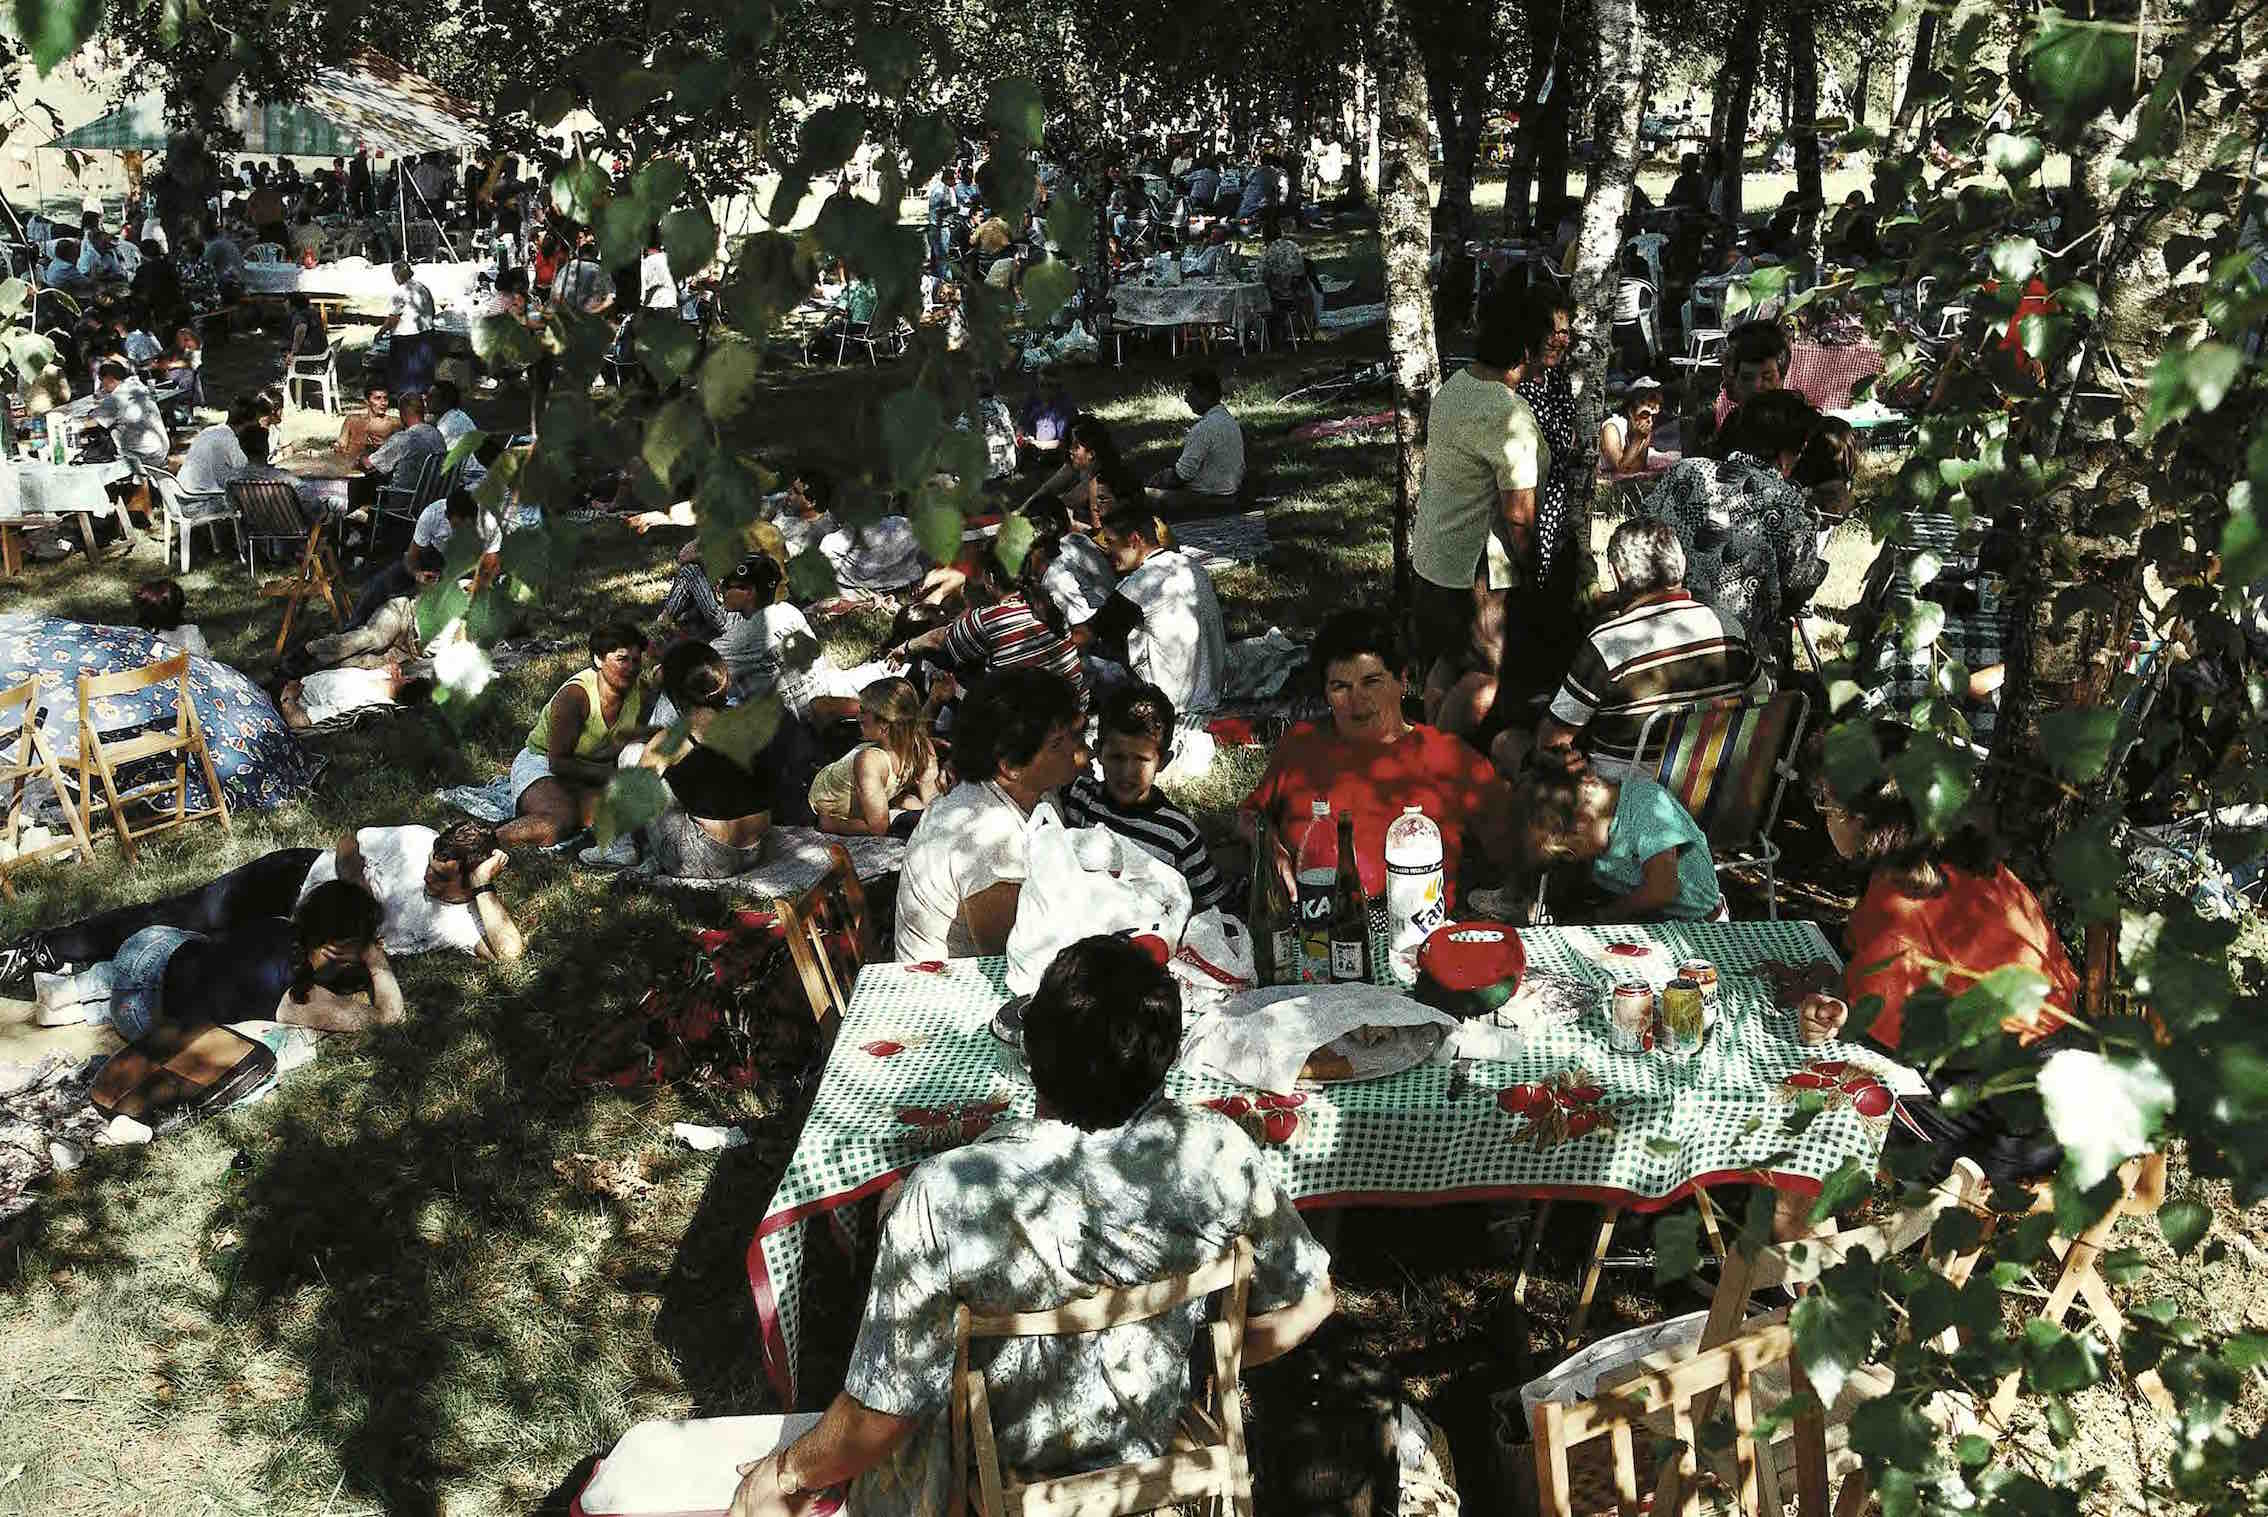 SPAIN. Extremadura. The Picnic, 1998. Photo by Harry Gruyaert.